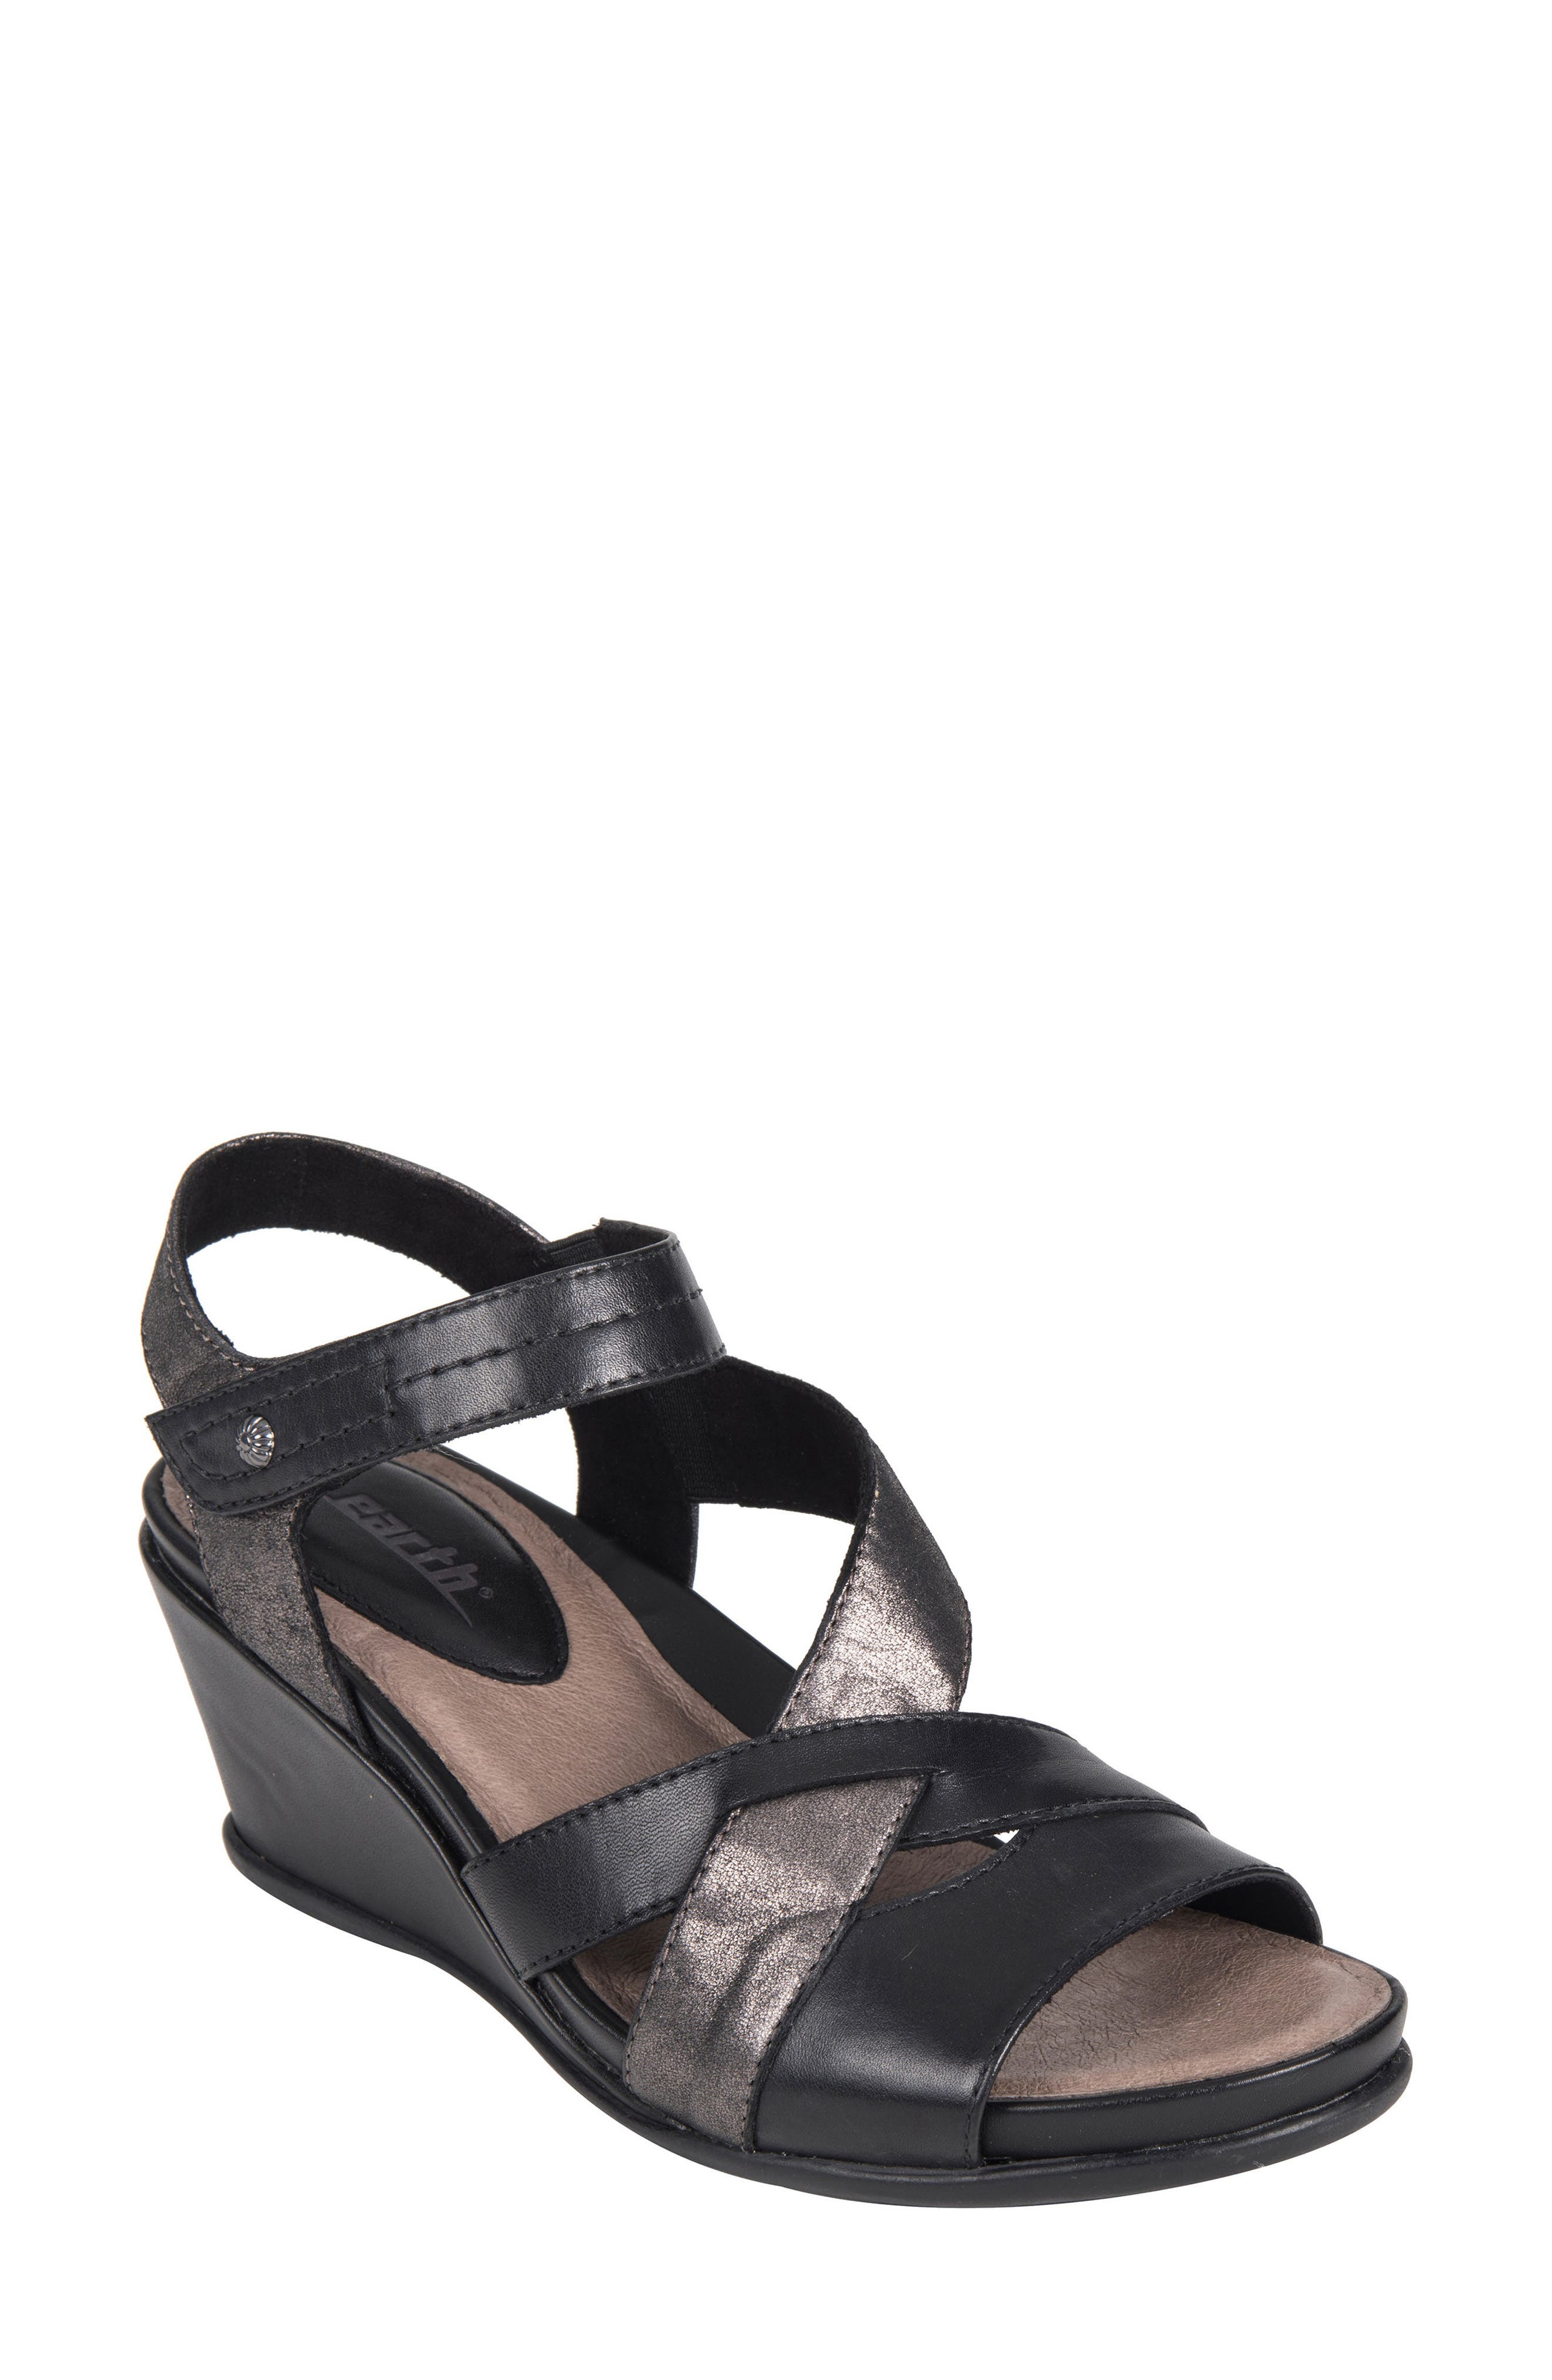 Thistle Wedge Sandal,                         Main,                         color, 001